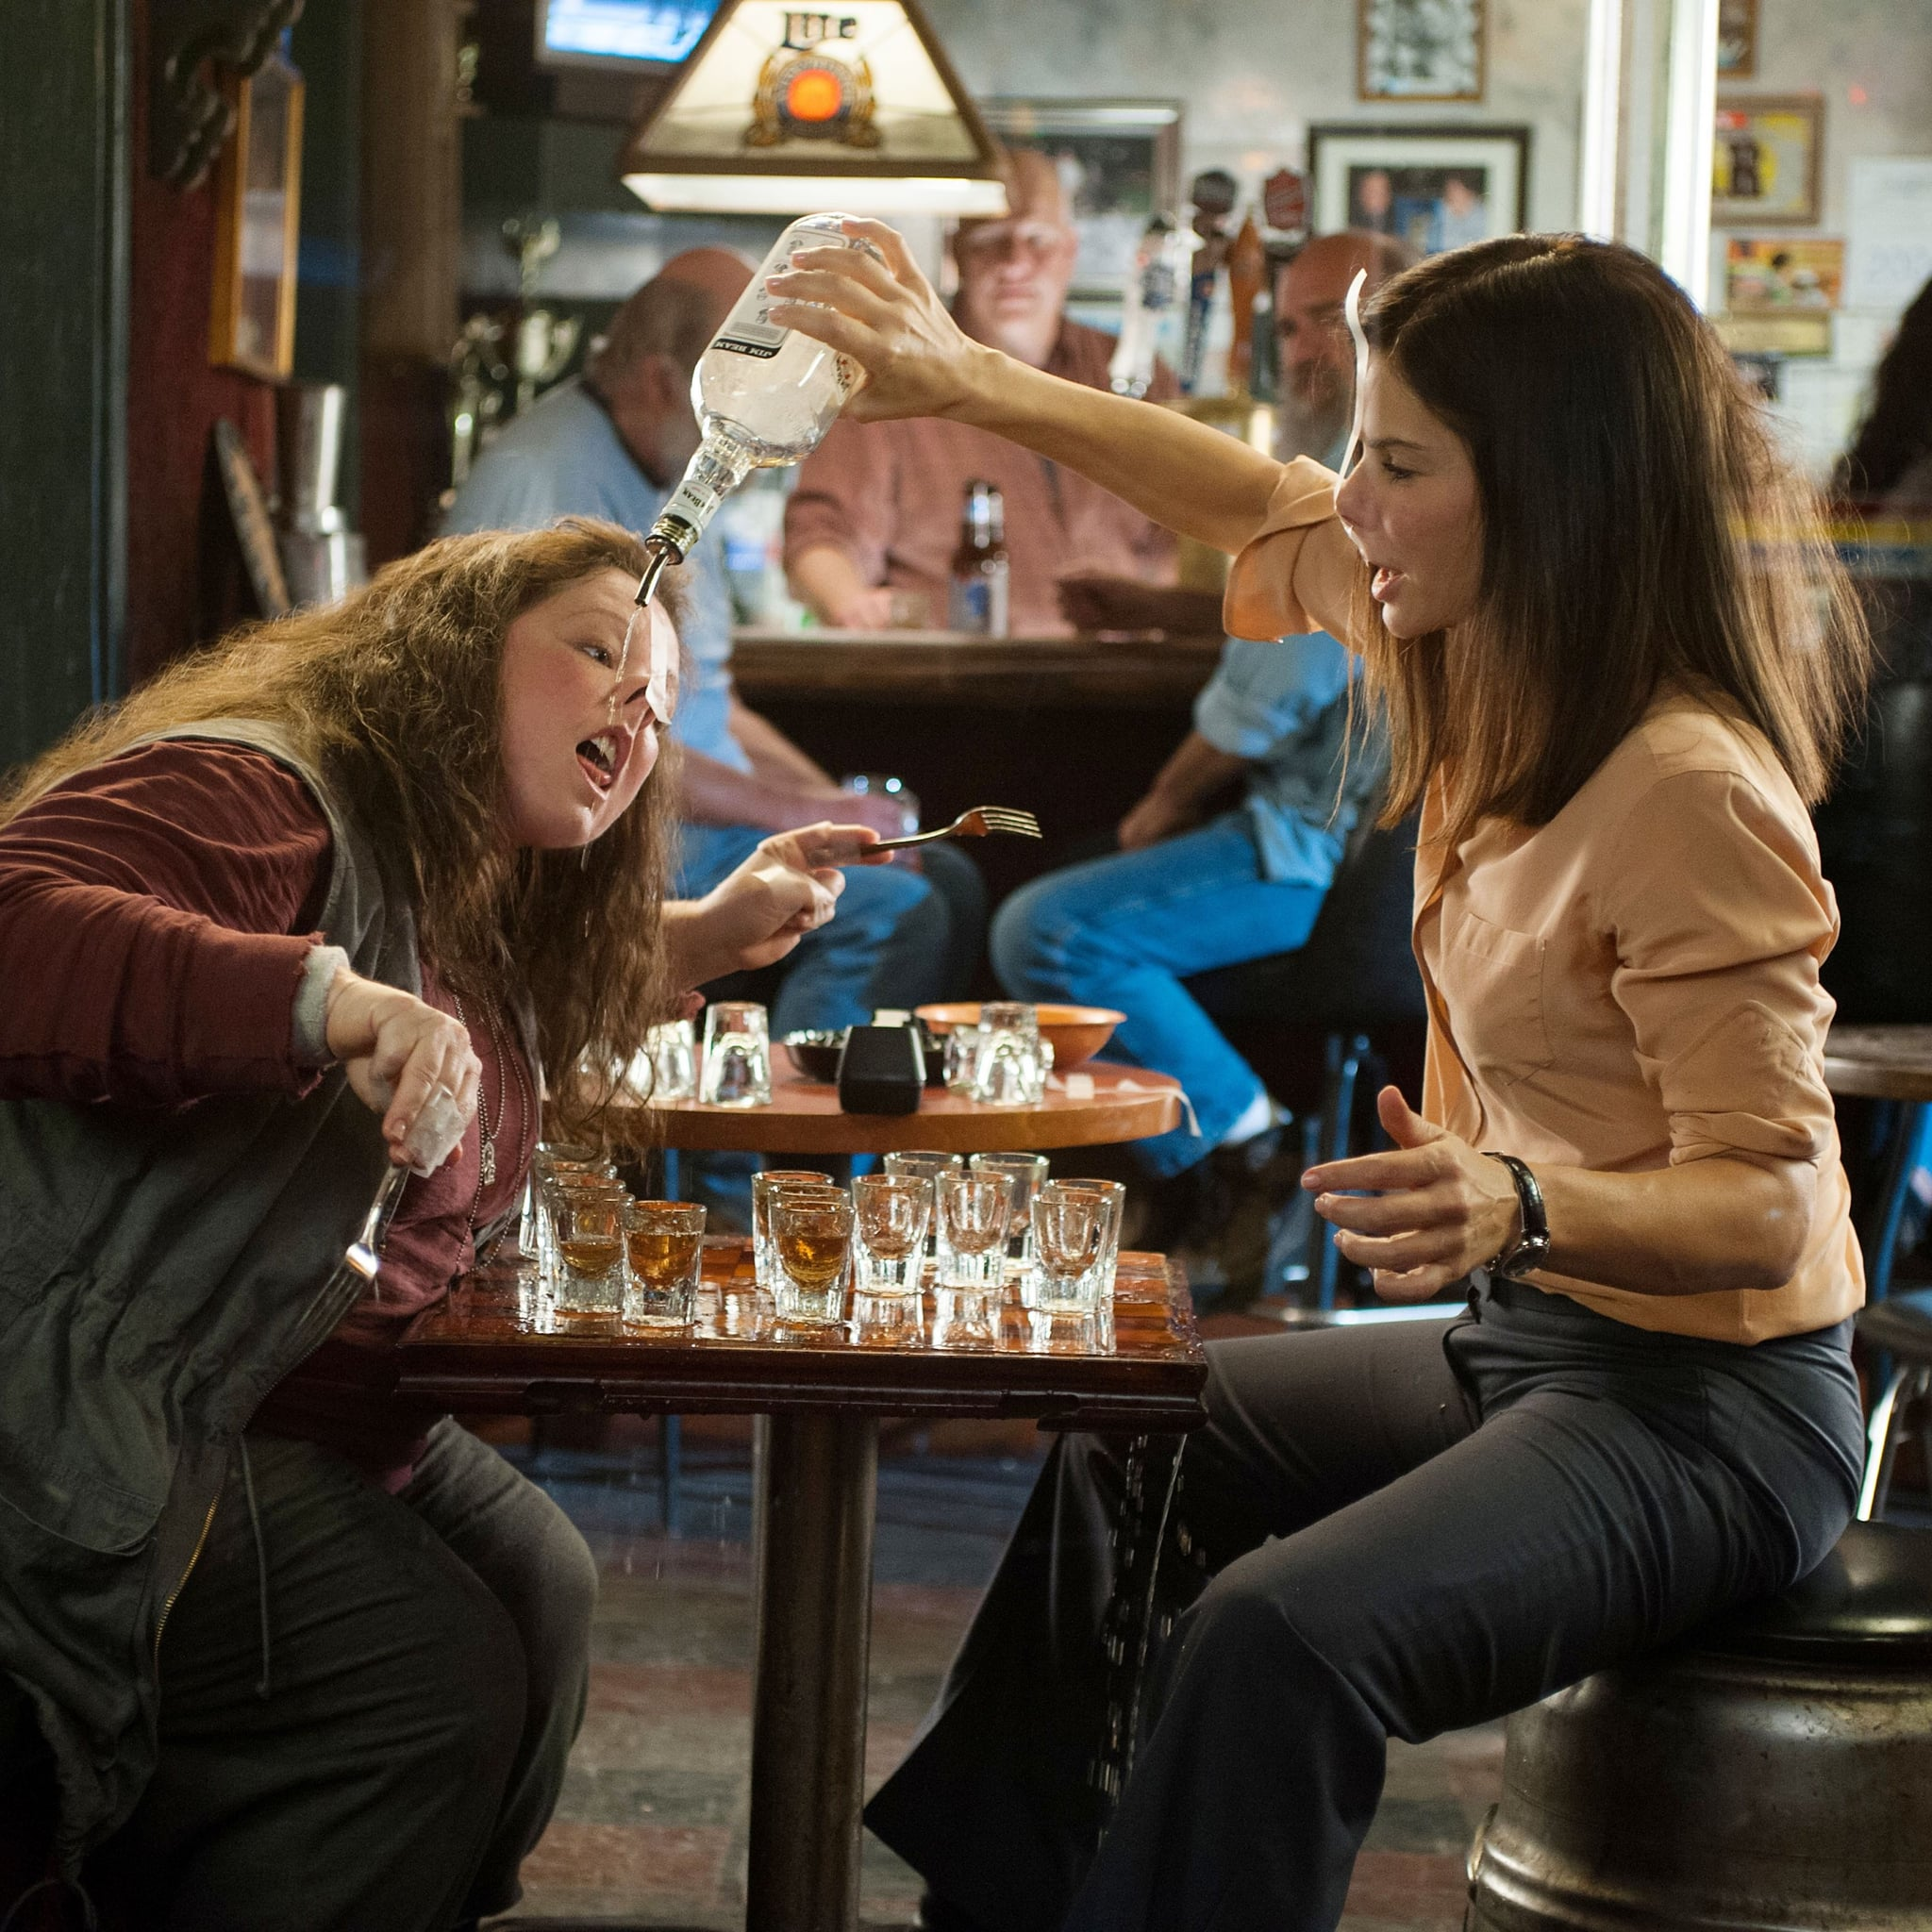 What are the films about female friendship